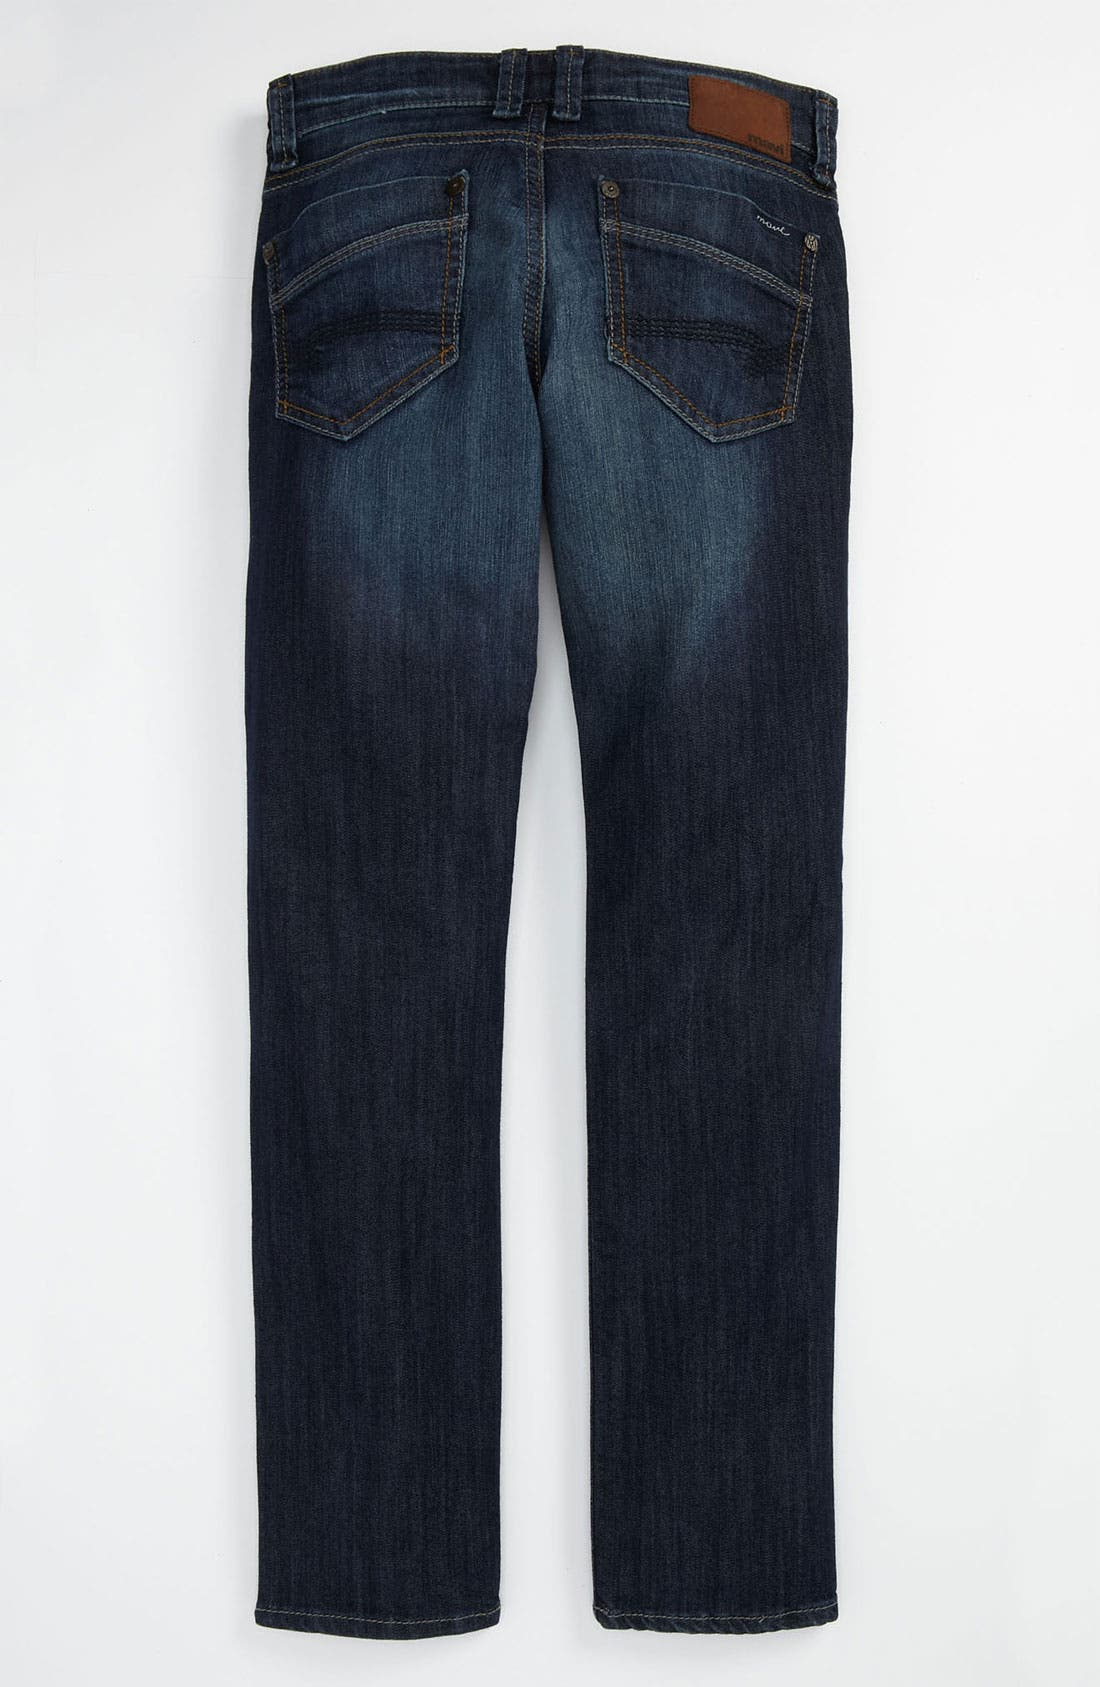 Alternate Image 1 Selected - Mavi Jeans 'Justin' Jeans (Big Boys)